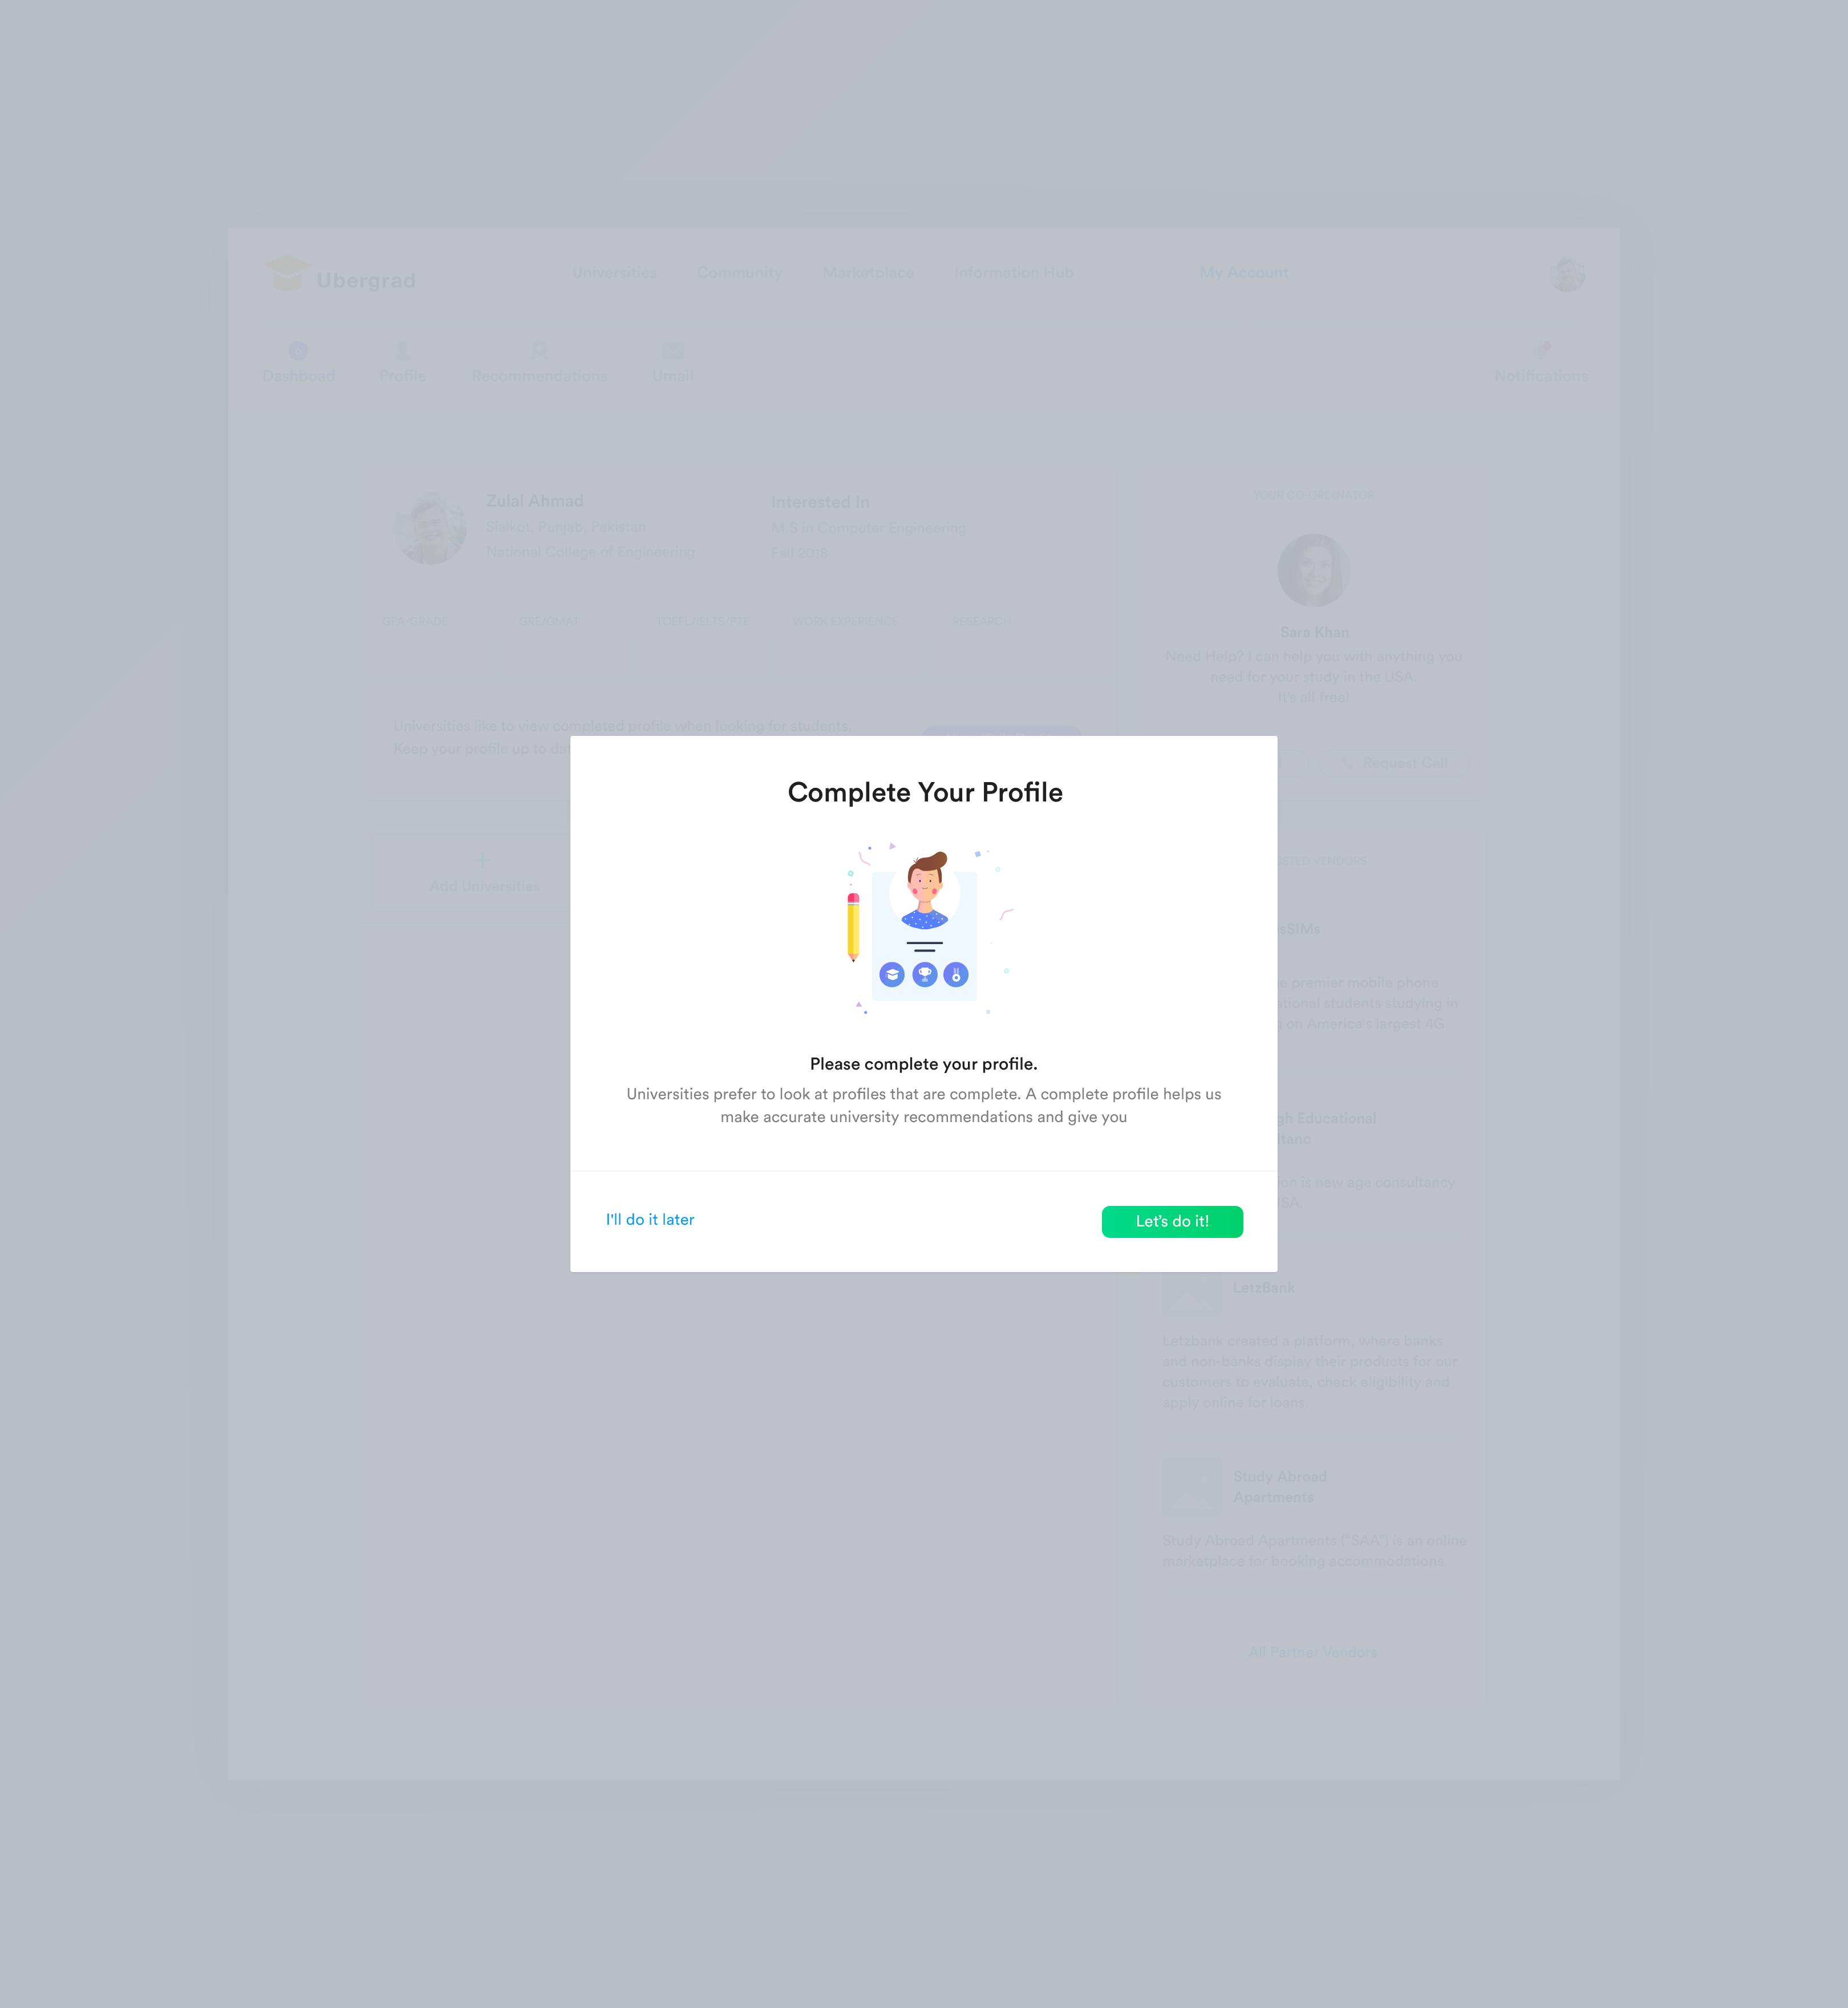 Dashboard complete your profile